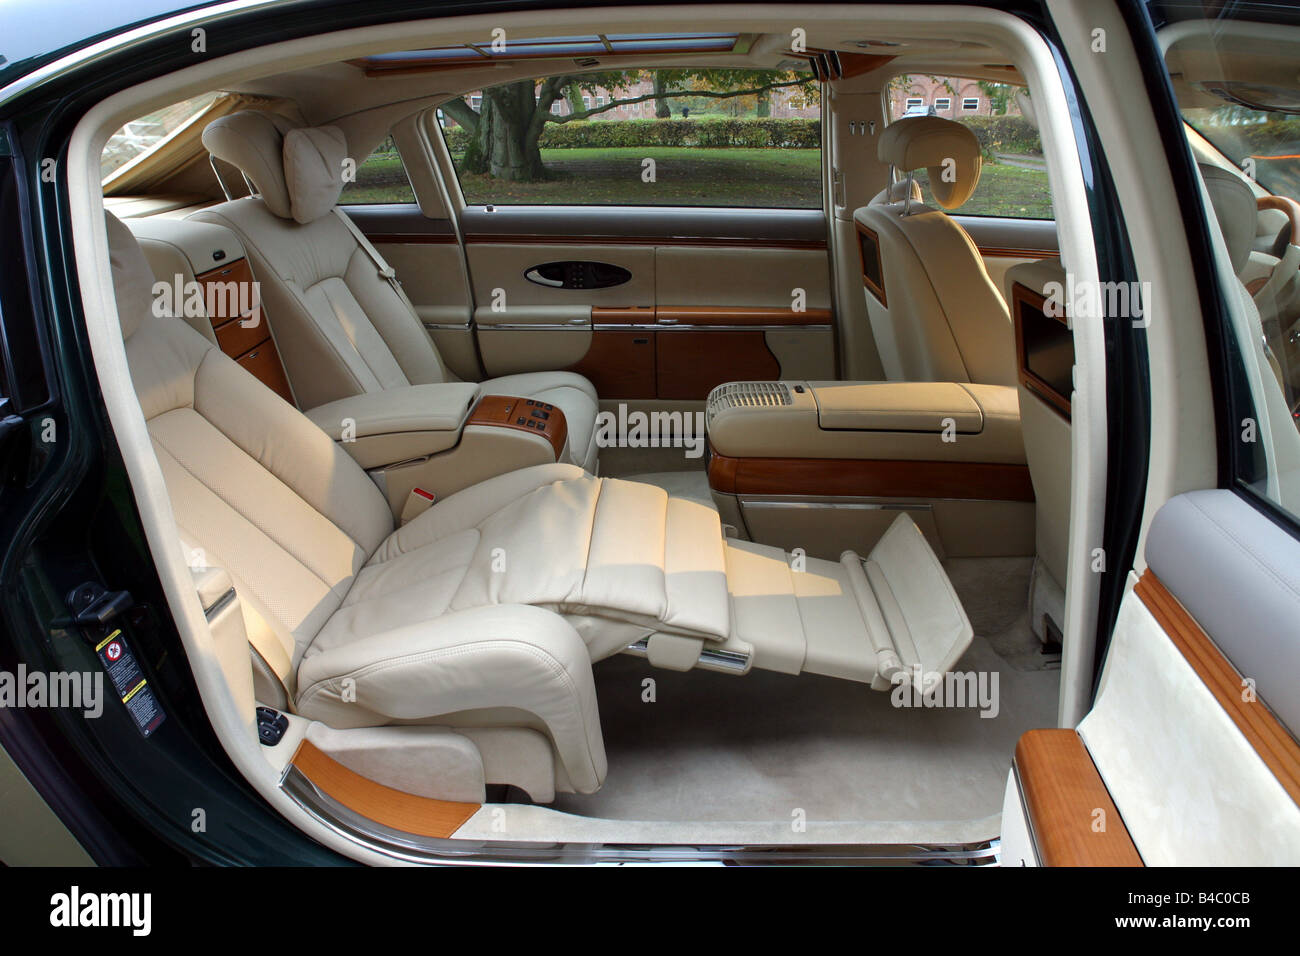 Car Mercedes Maybach 62 Luxury Approx S Limousine Model Year Stock Photo 19932763 Alamy